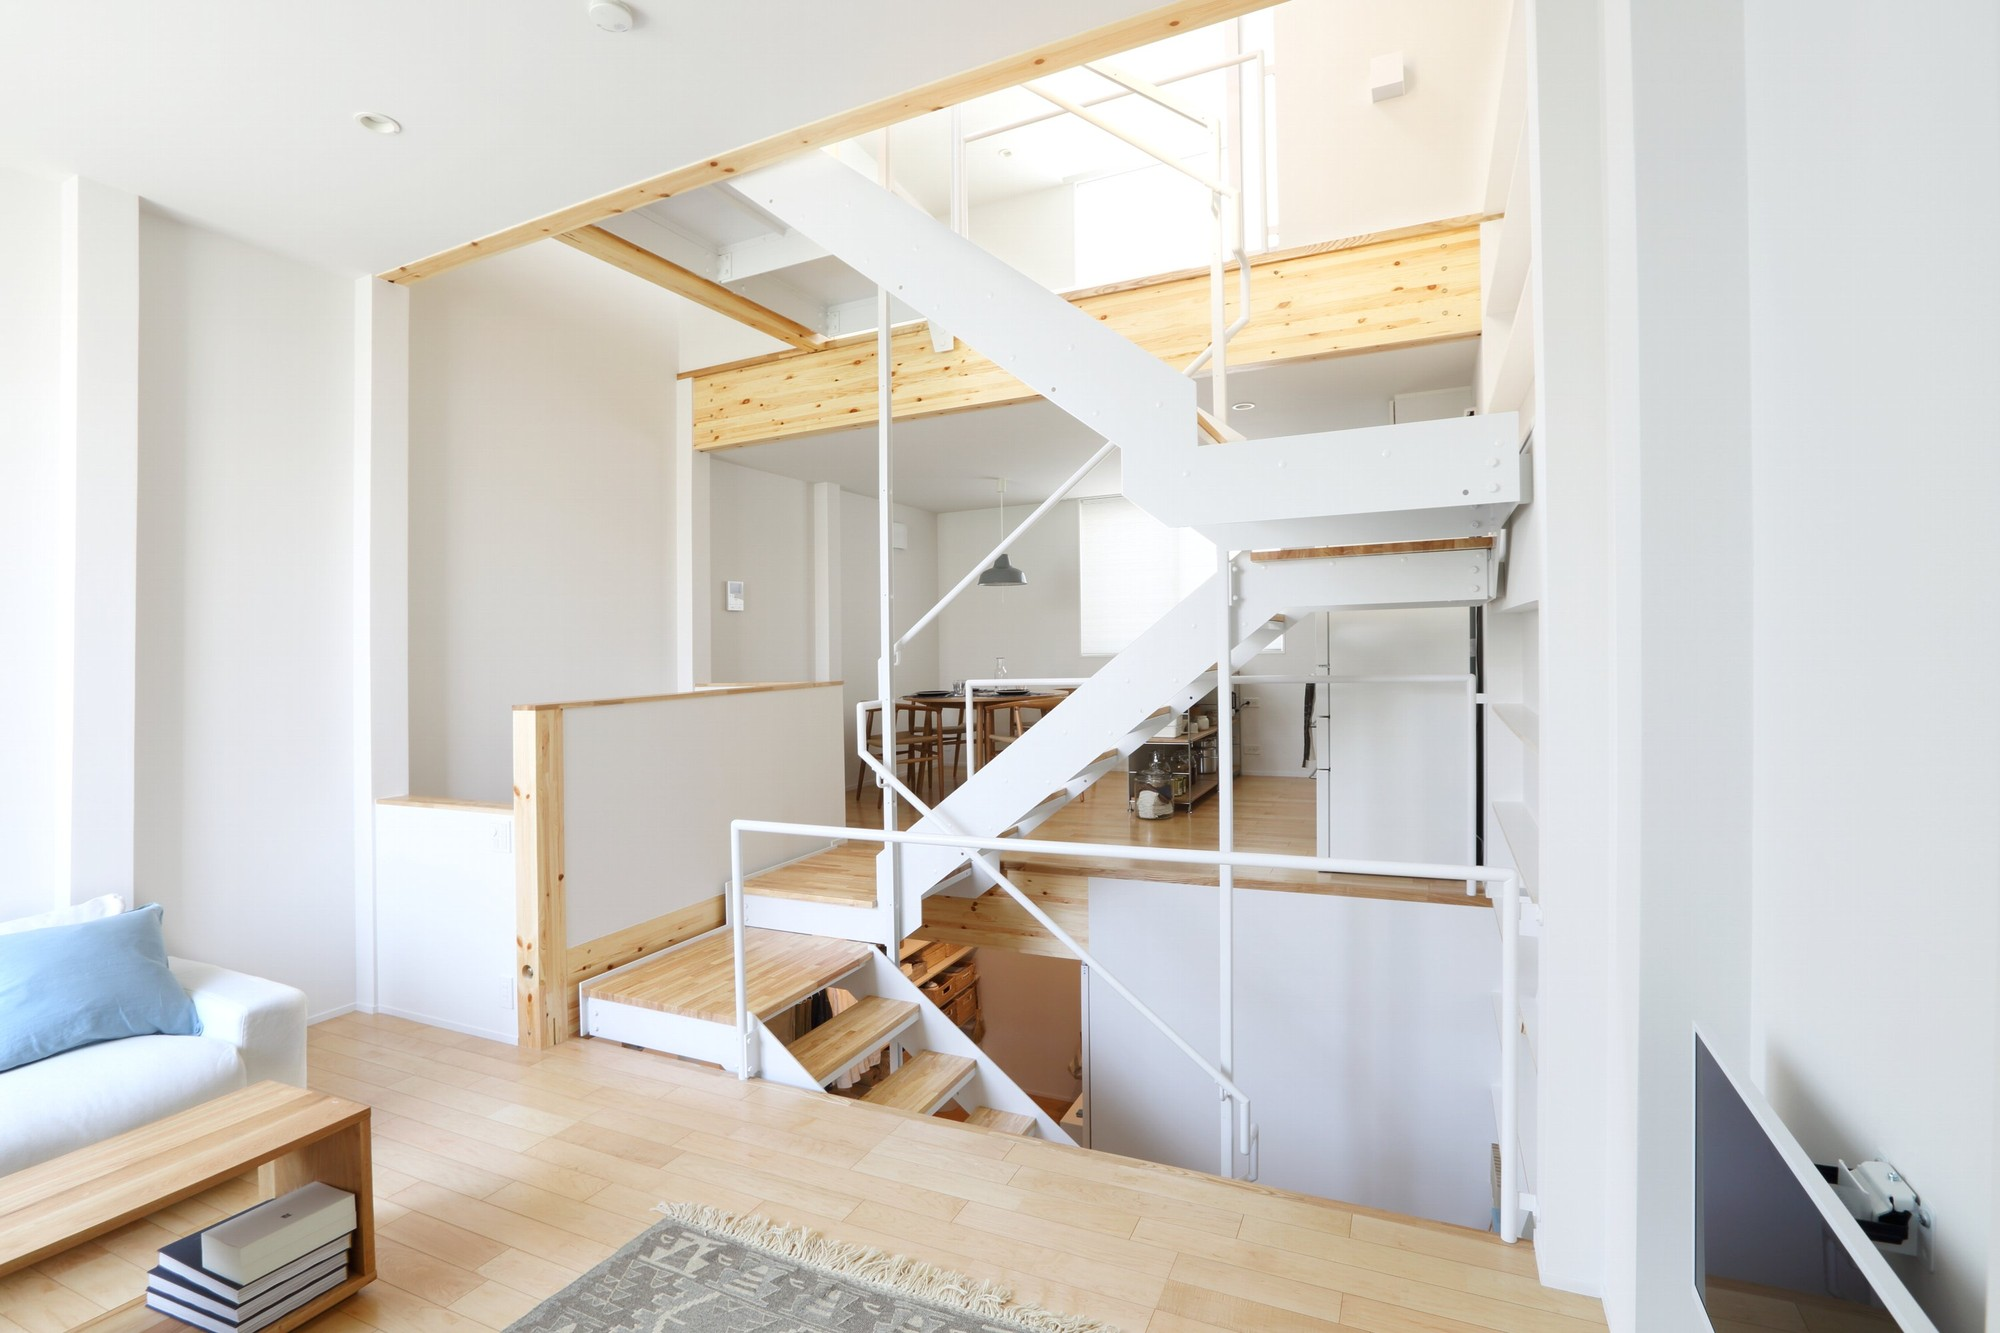 japanese dream house gallery of design your own home with muji 39 s prefab